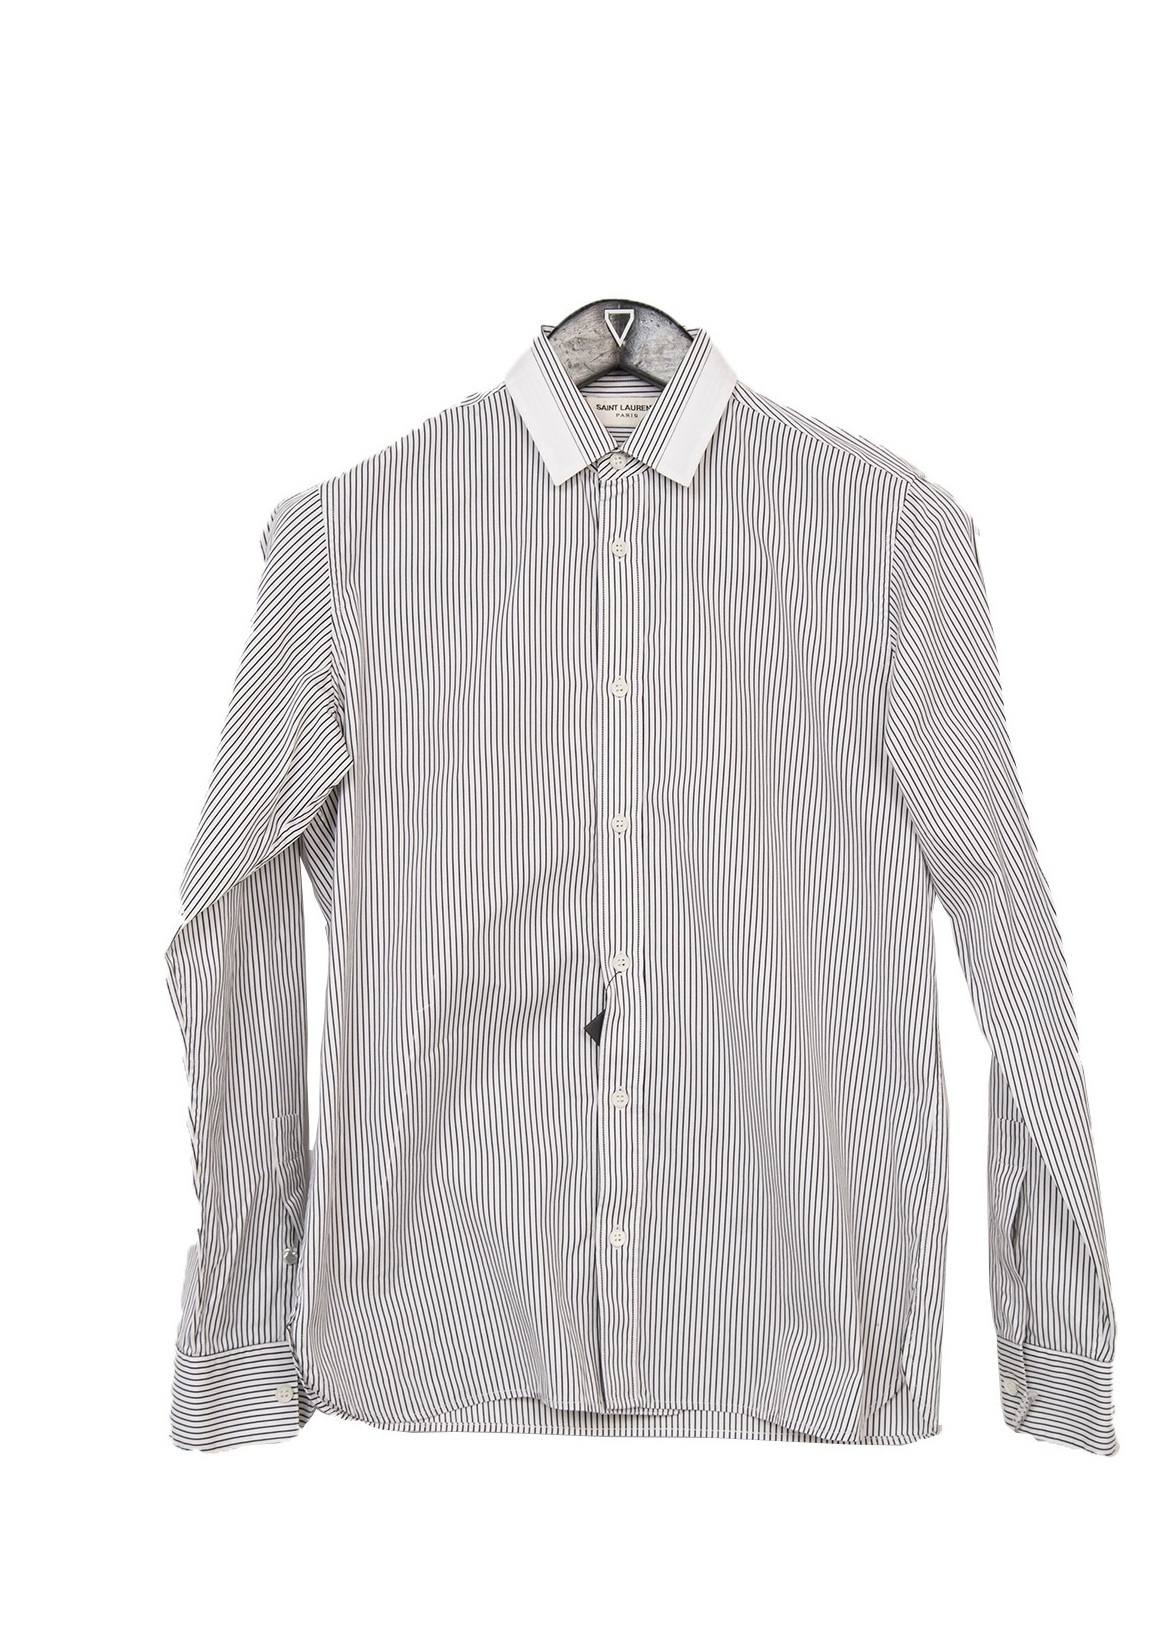 "16 SAINT LAURENT SHIRT ""SAINT-SH02"""